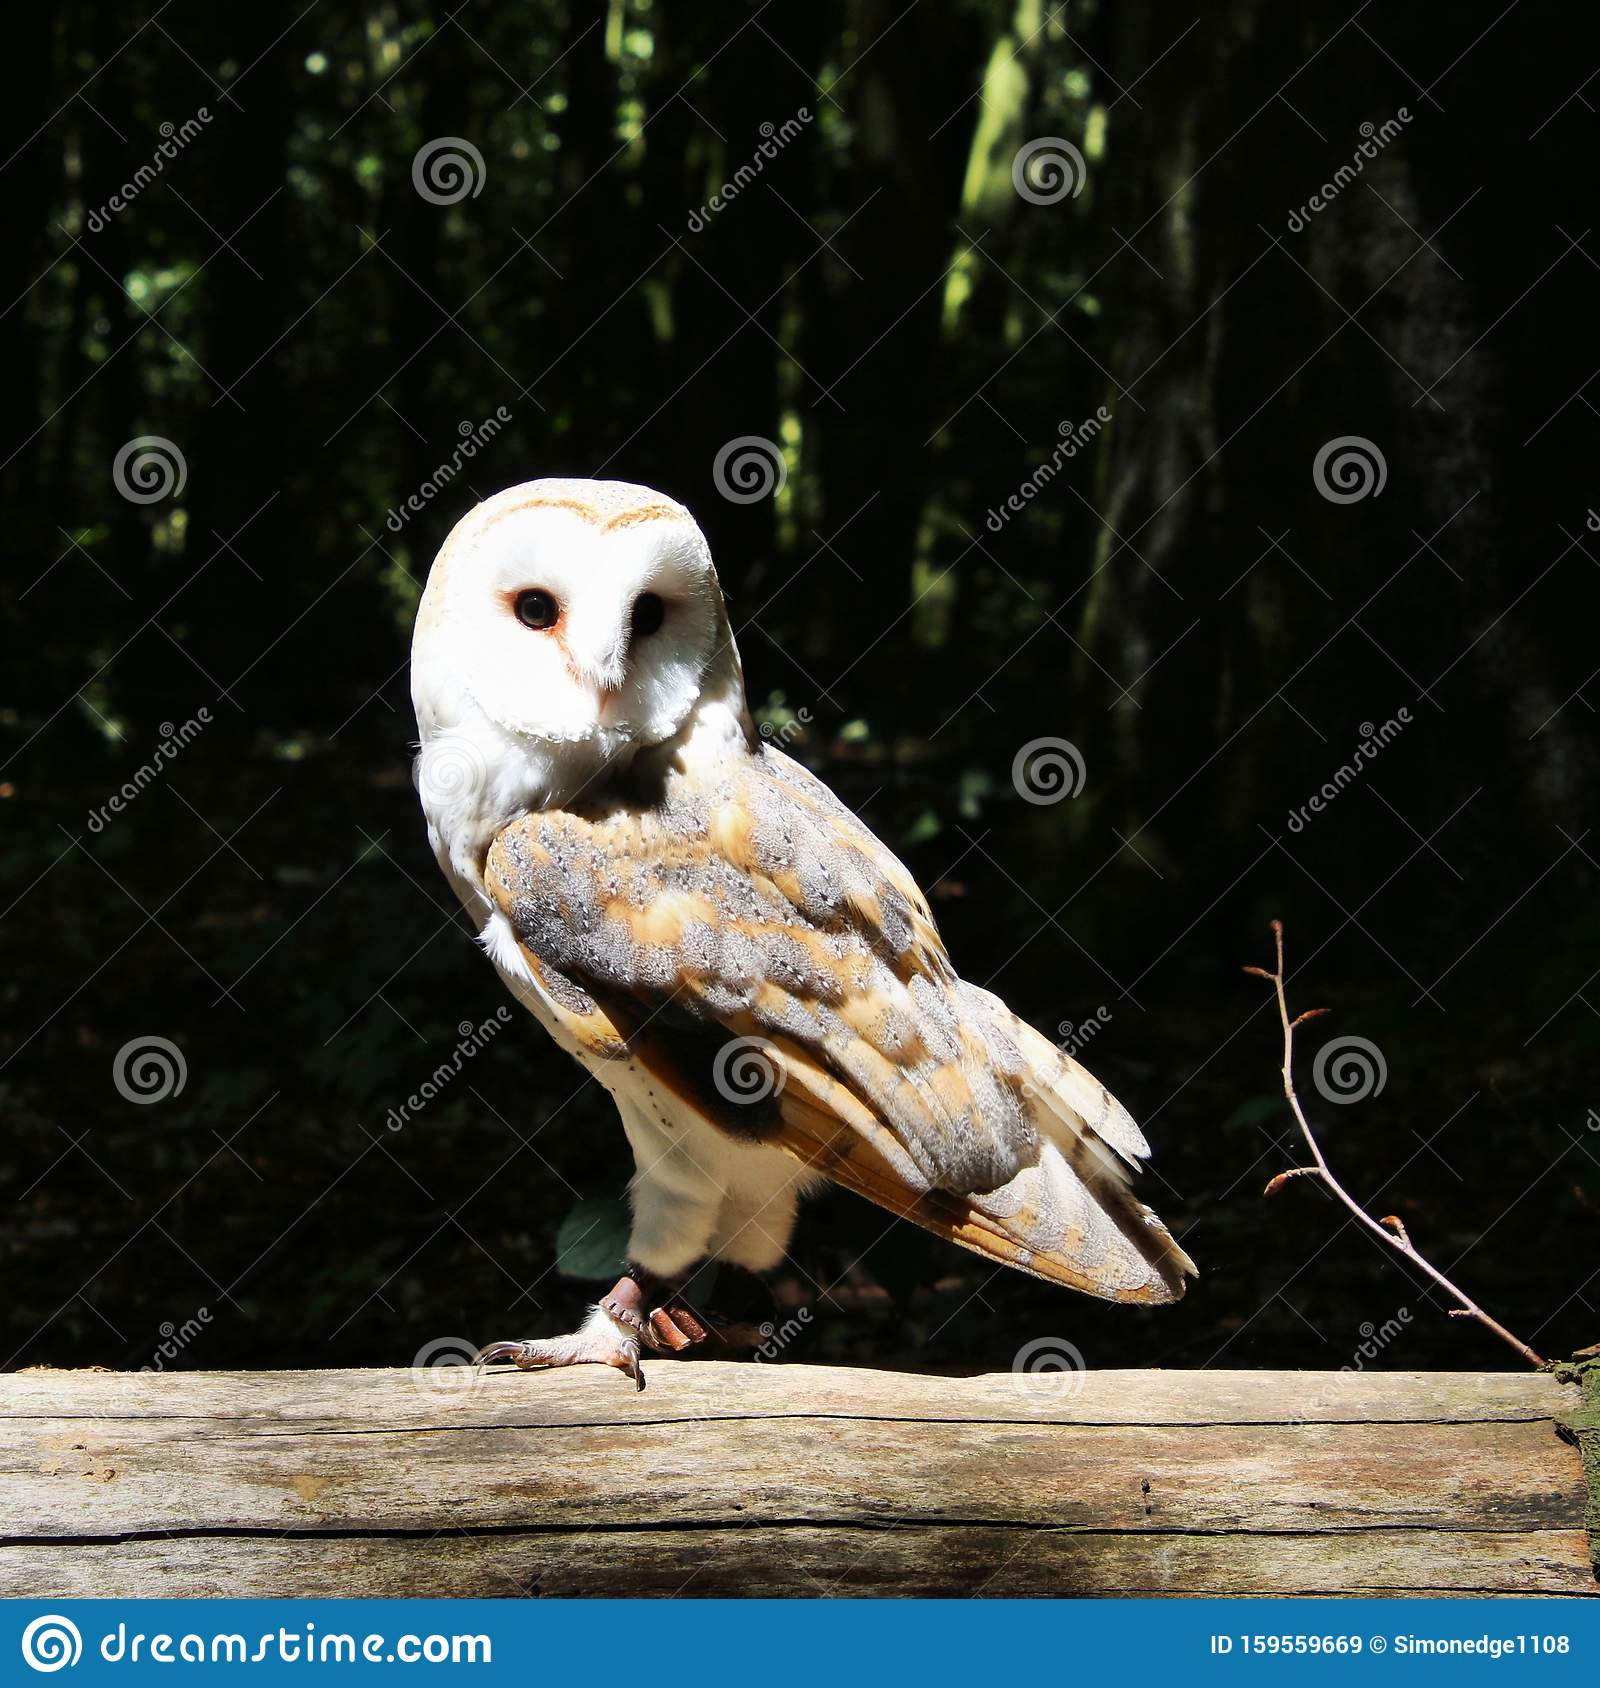 A View Of A Barn Owl On A Post Stock Image - Image of ...